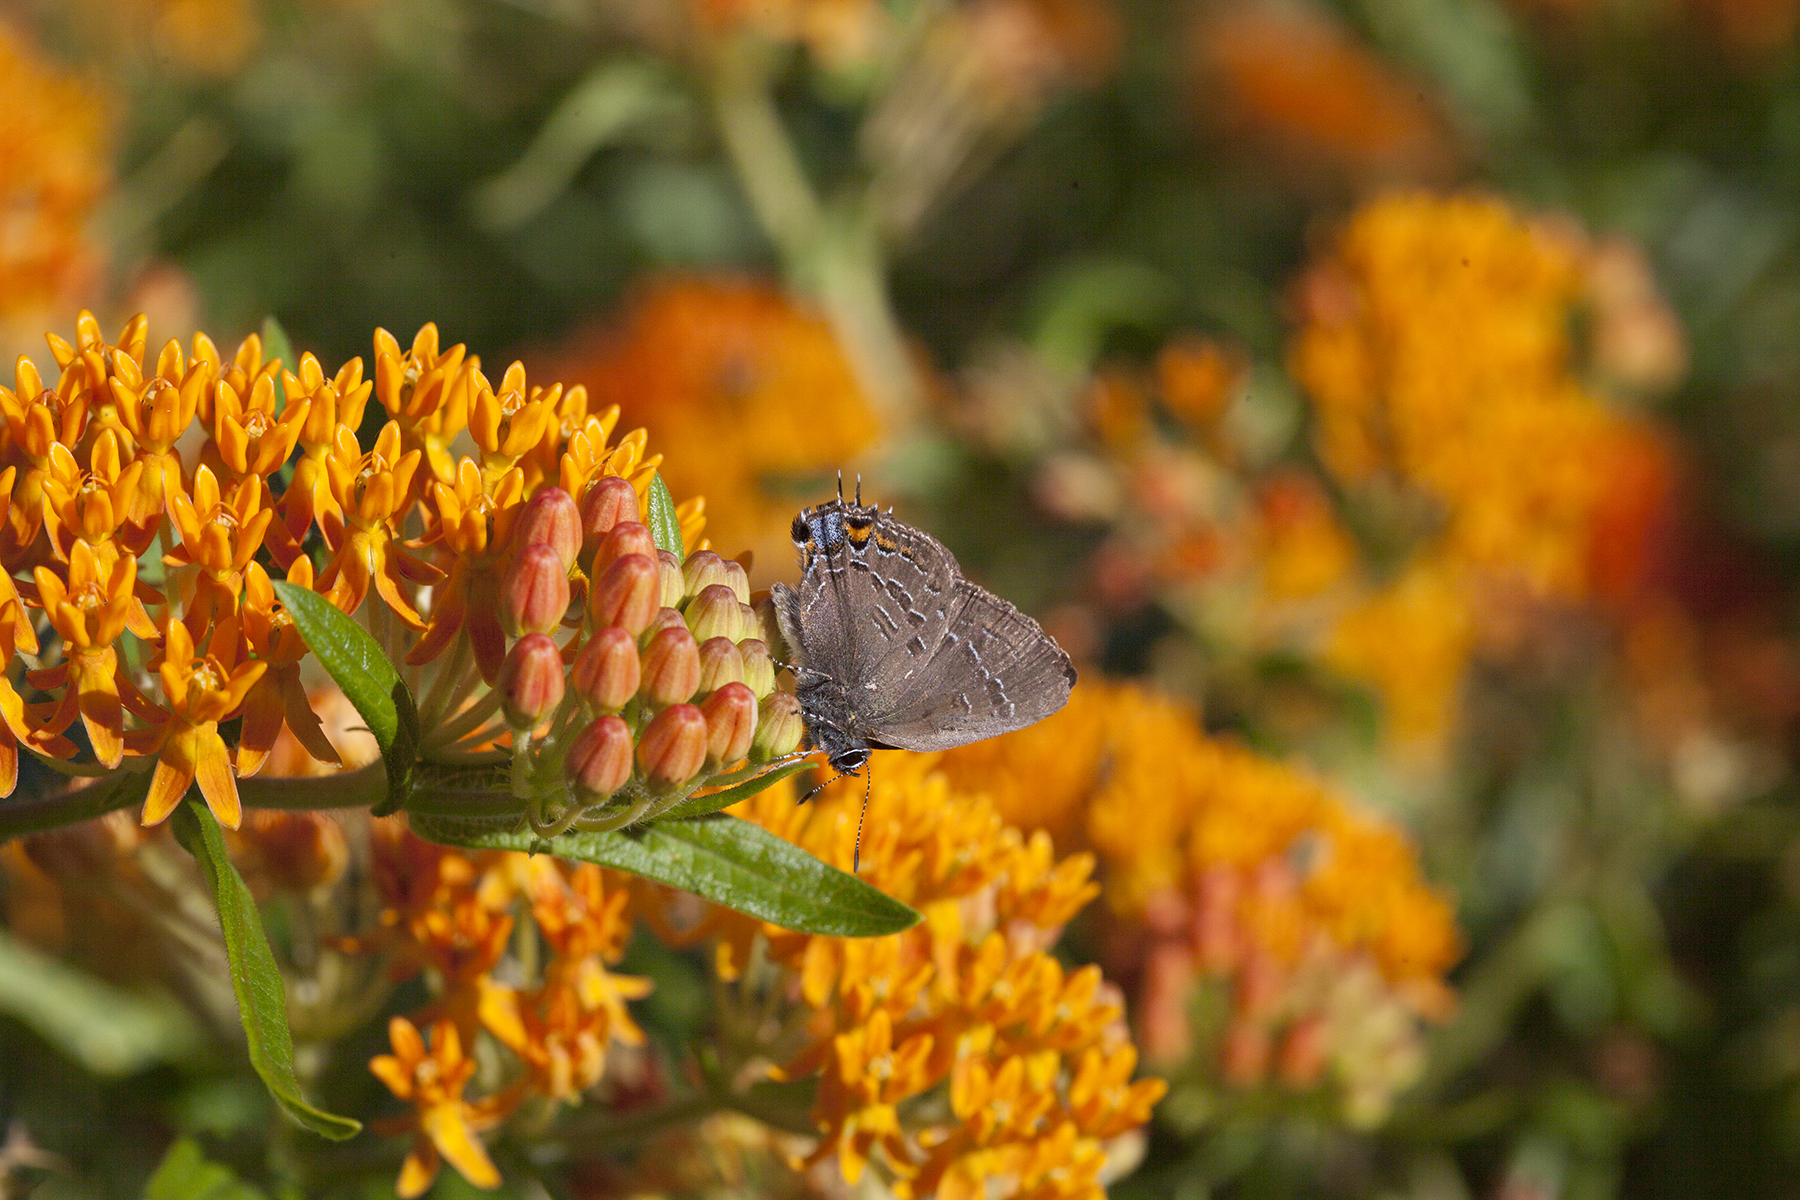 Hairstreak butterfly on butterfly weed